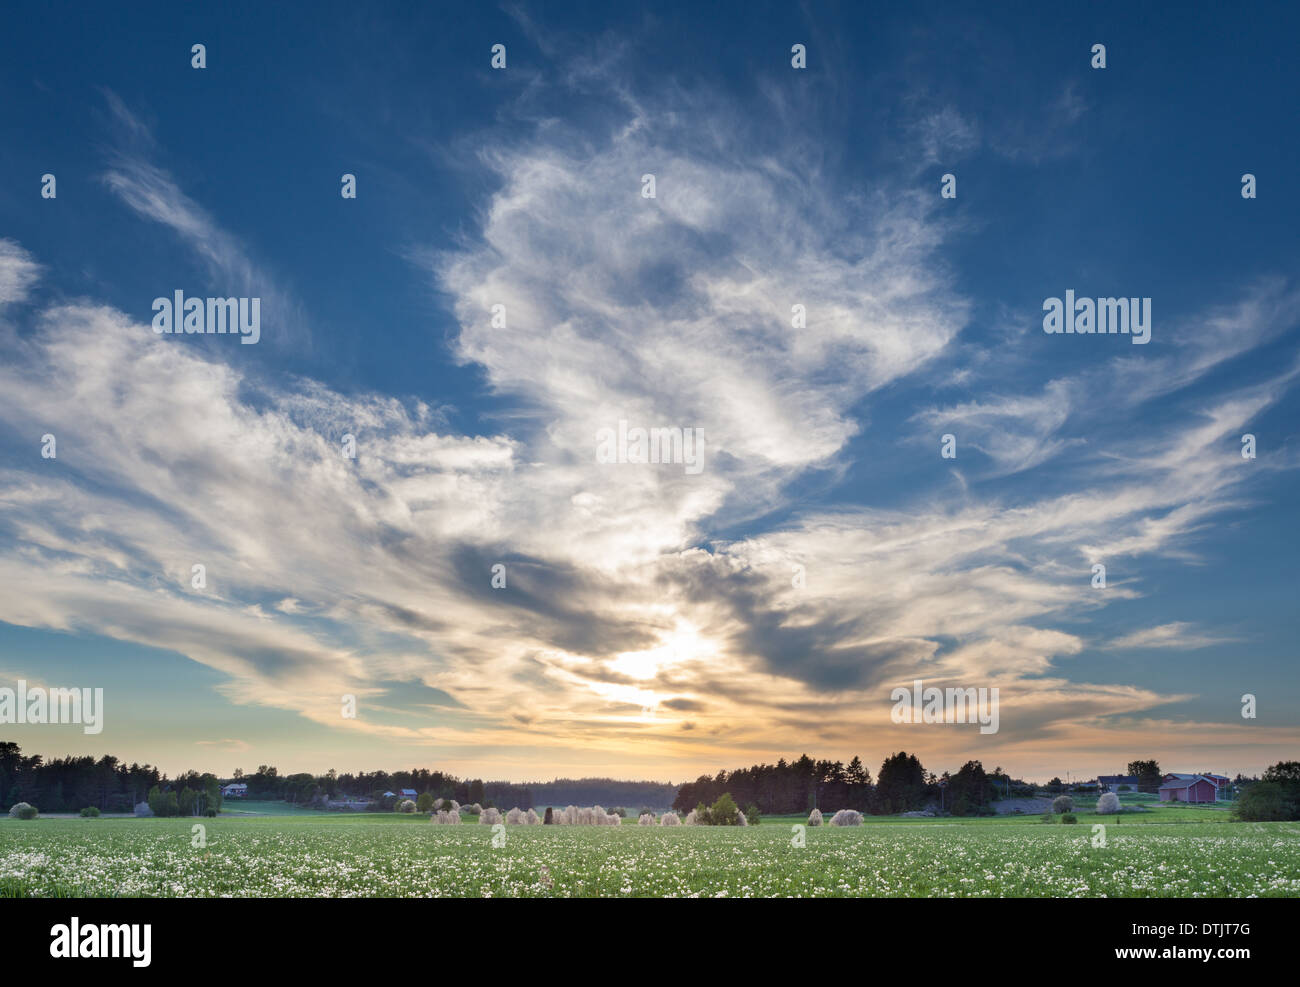 Summery evening at countryside - Stock Image